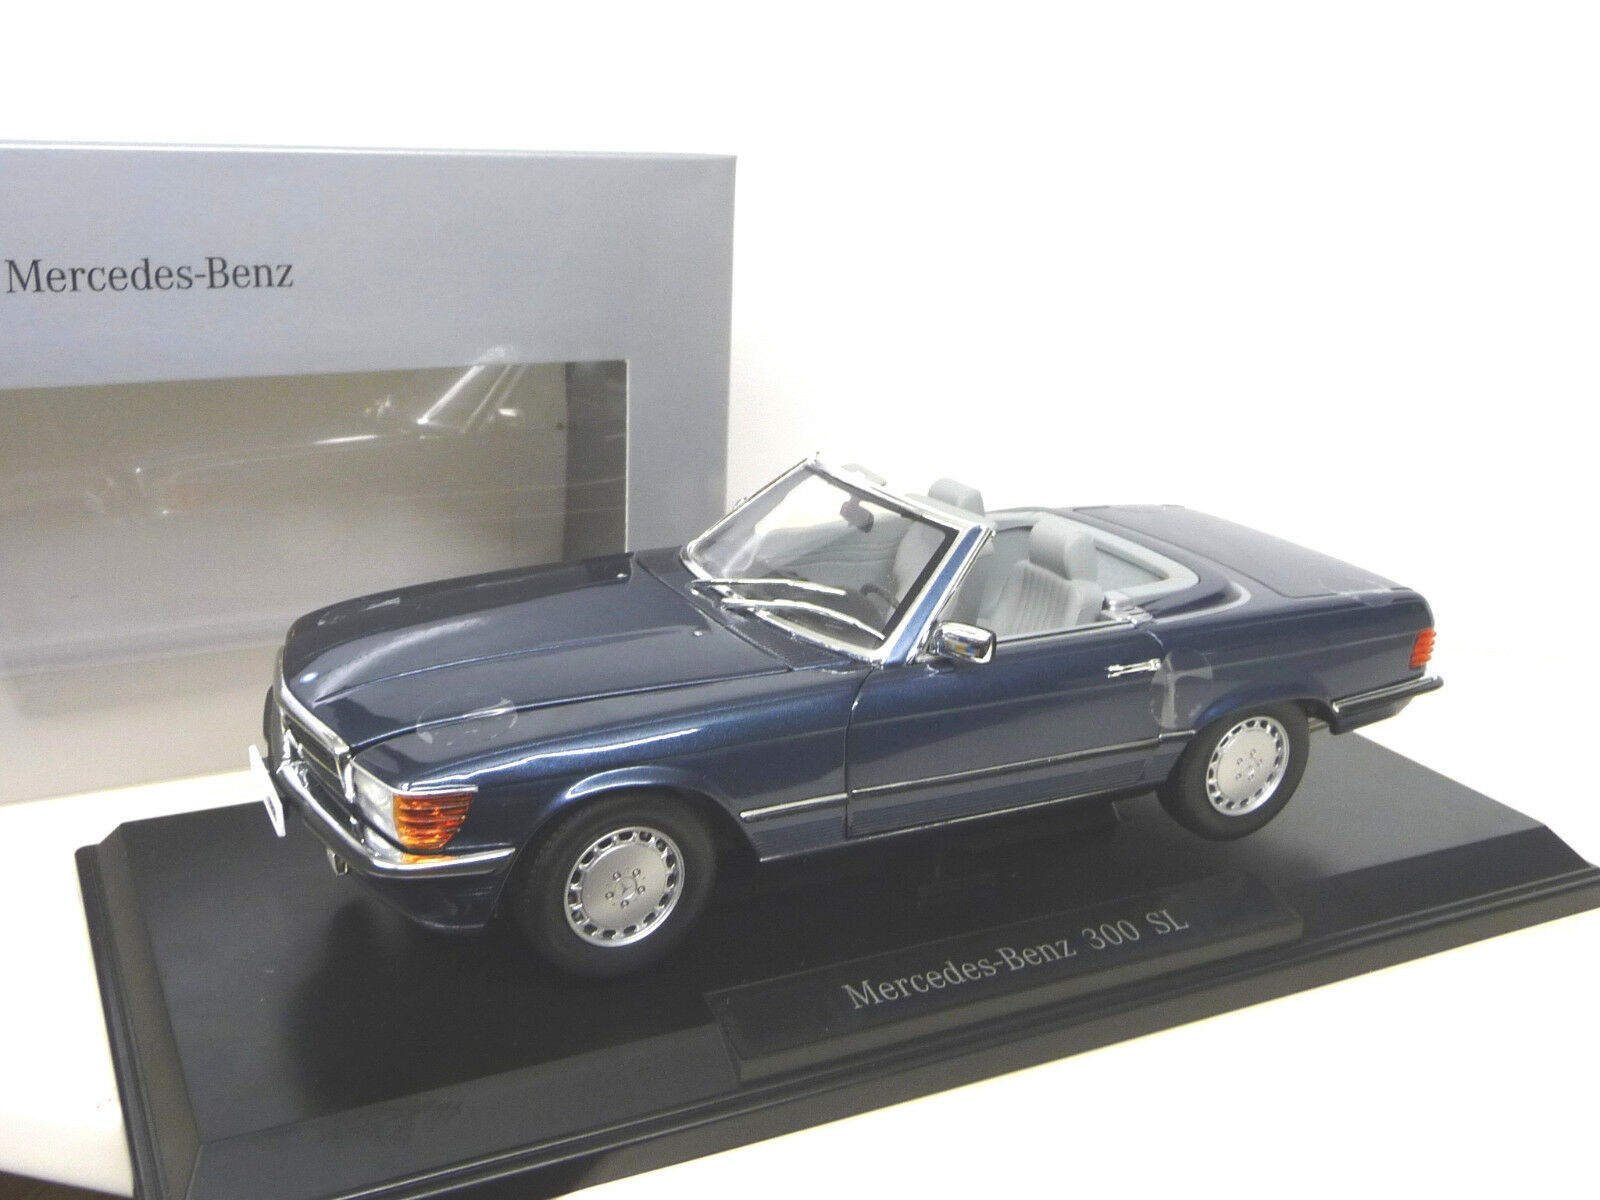 MERCEDS 300SL W107 NAUTIK blueE +  Softtop Dealer Ed. Norev 1 18 FREE SHIPPING